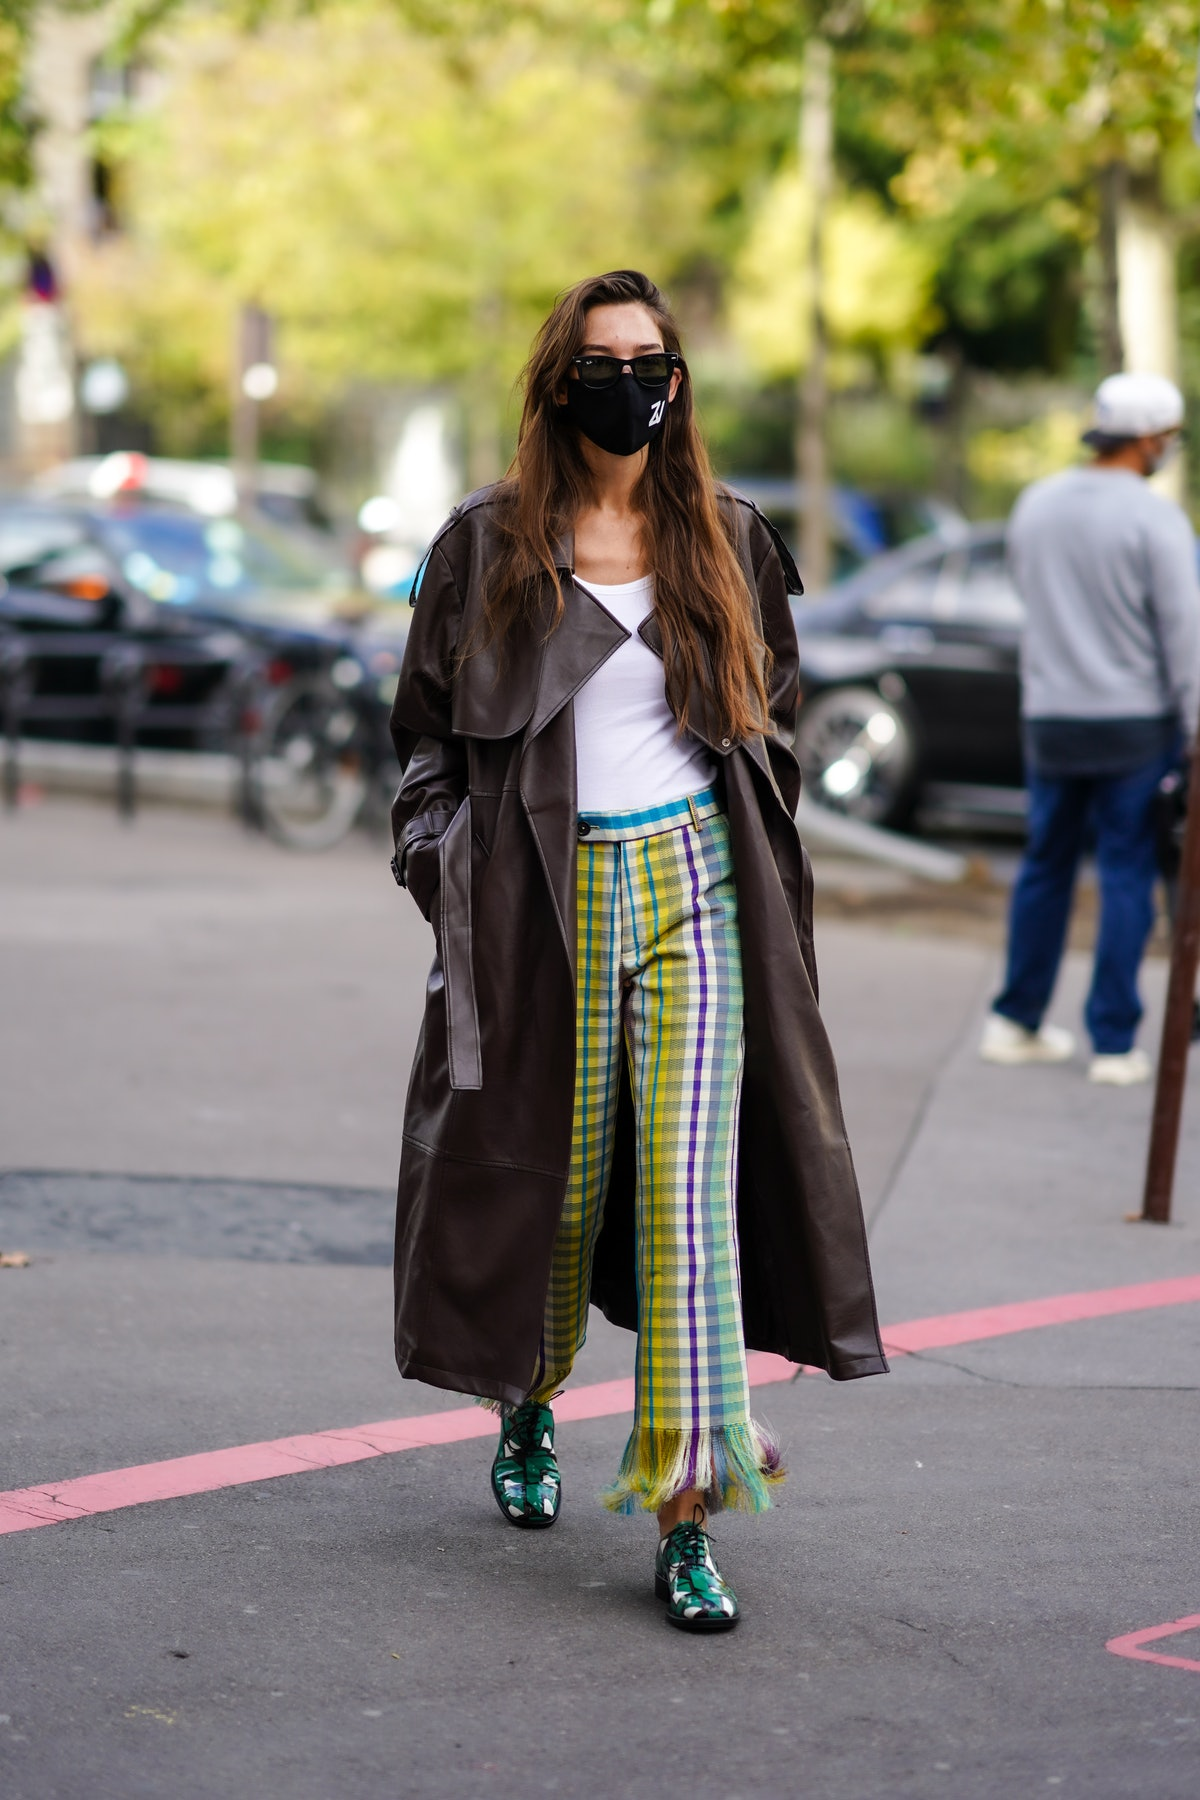 PARIS, FRANCE - OCTOBER 01: Estelle Chemouny wears black Ray Ban sunglasses, a black ZV logo face mask, a white t-shirt, a long brown shiny leather blazer jacket coat, yellow blue purple and white checkered flared ripped fringed pants, shiny green and white pattern lace derby shoes, outside Chloe, during Paris Fashion Week - Womenswear Spring Summer 2021, on October 01, 2020 in Paris, France. (Photo by Edward Berthelot/Getty Images)